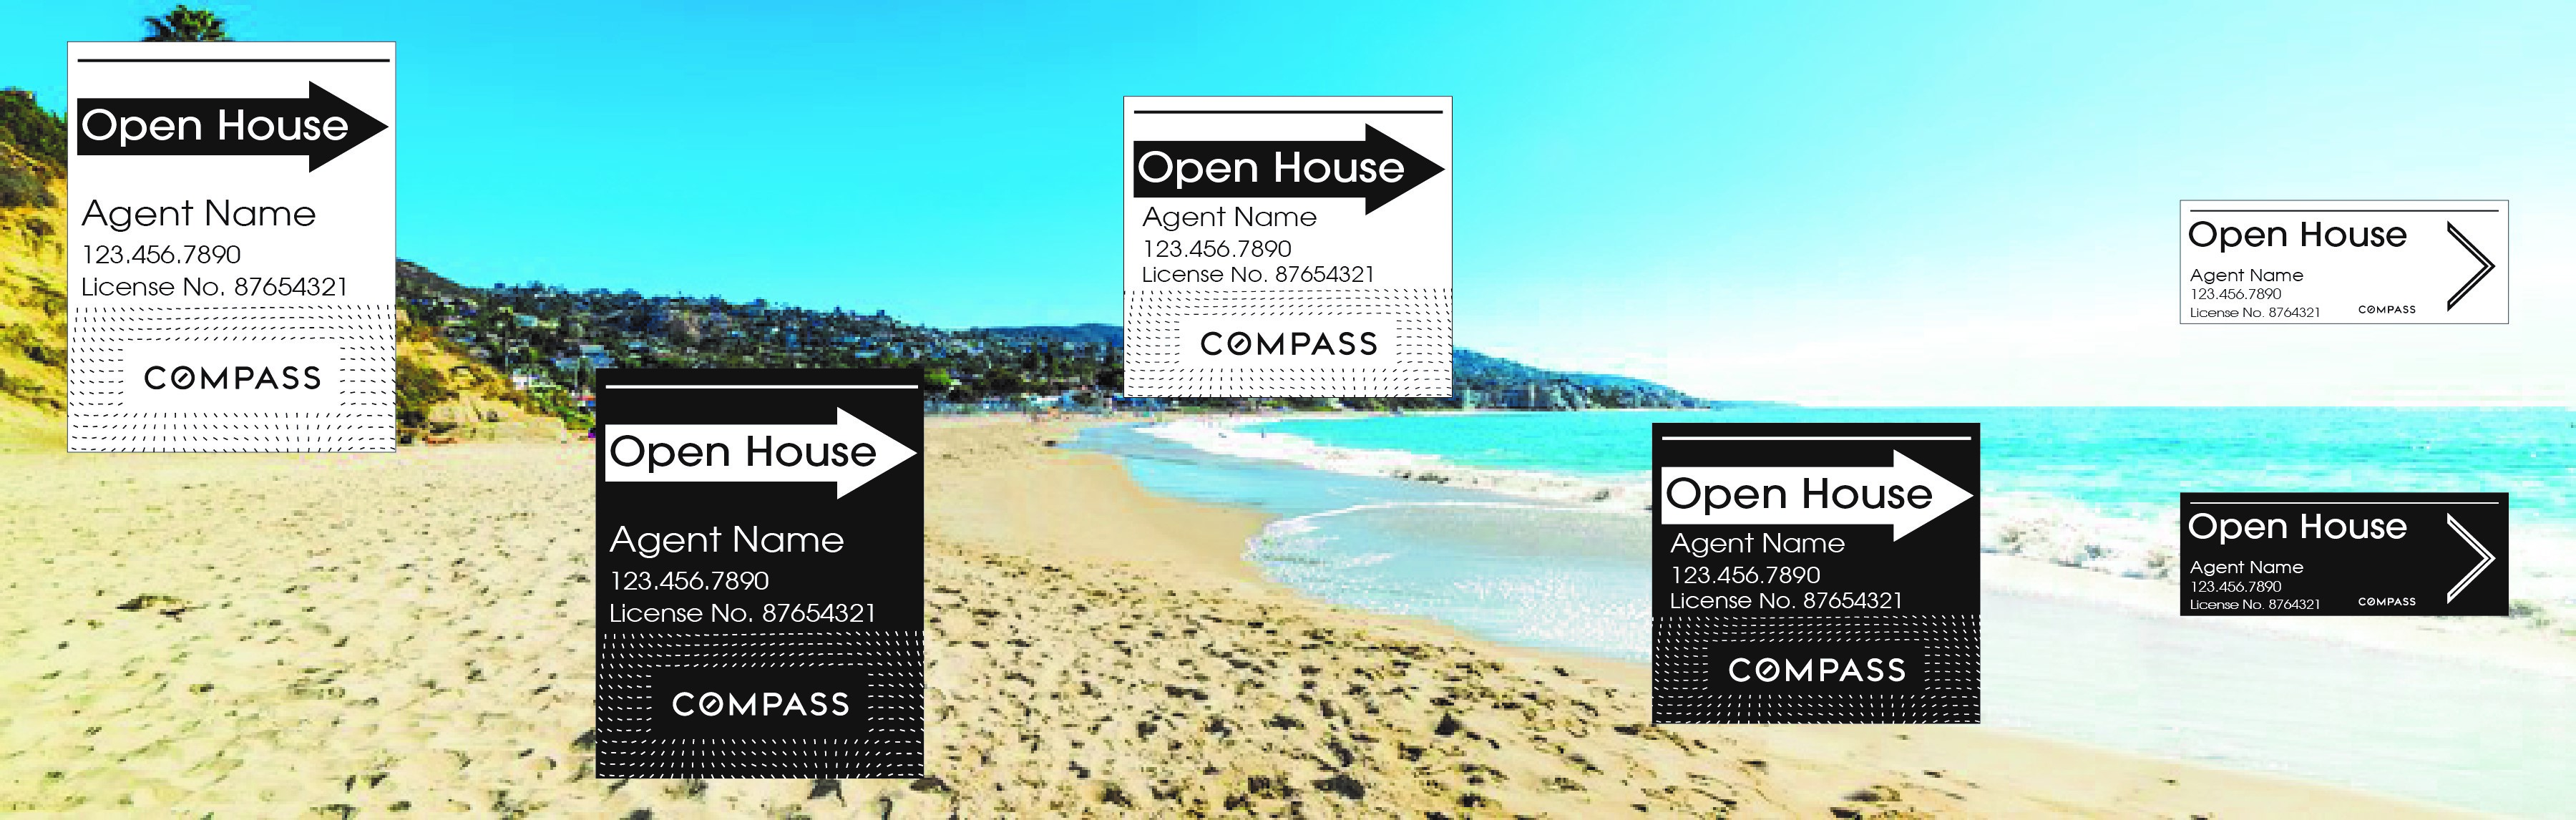 Compass Realty Signs Real Estate Signs Open House